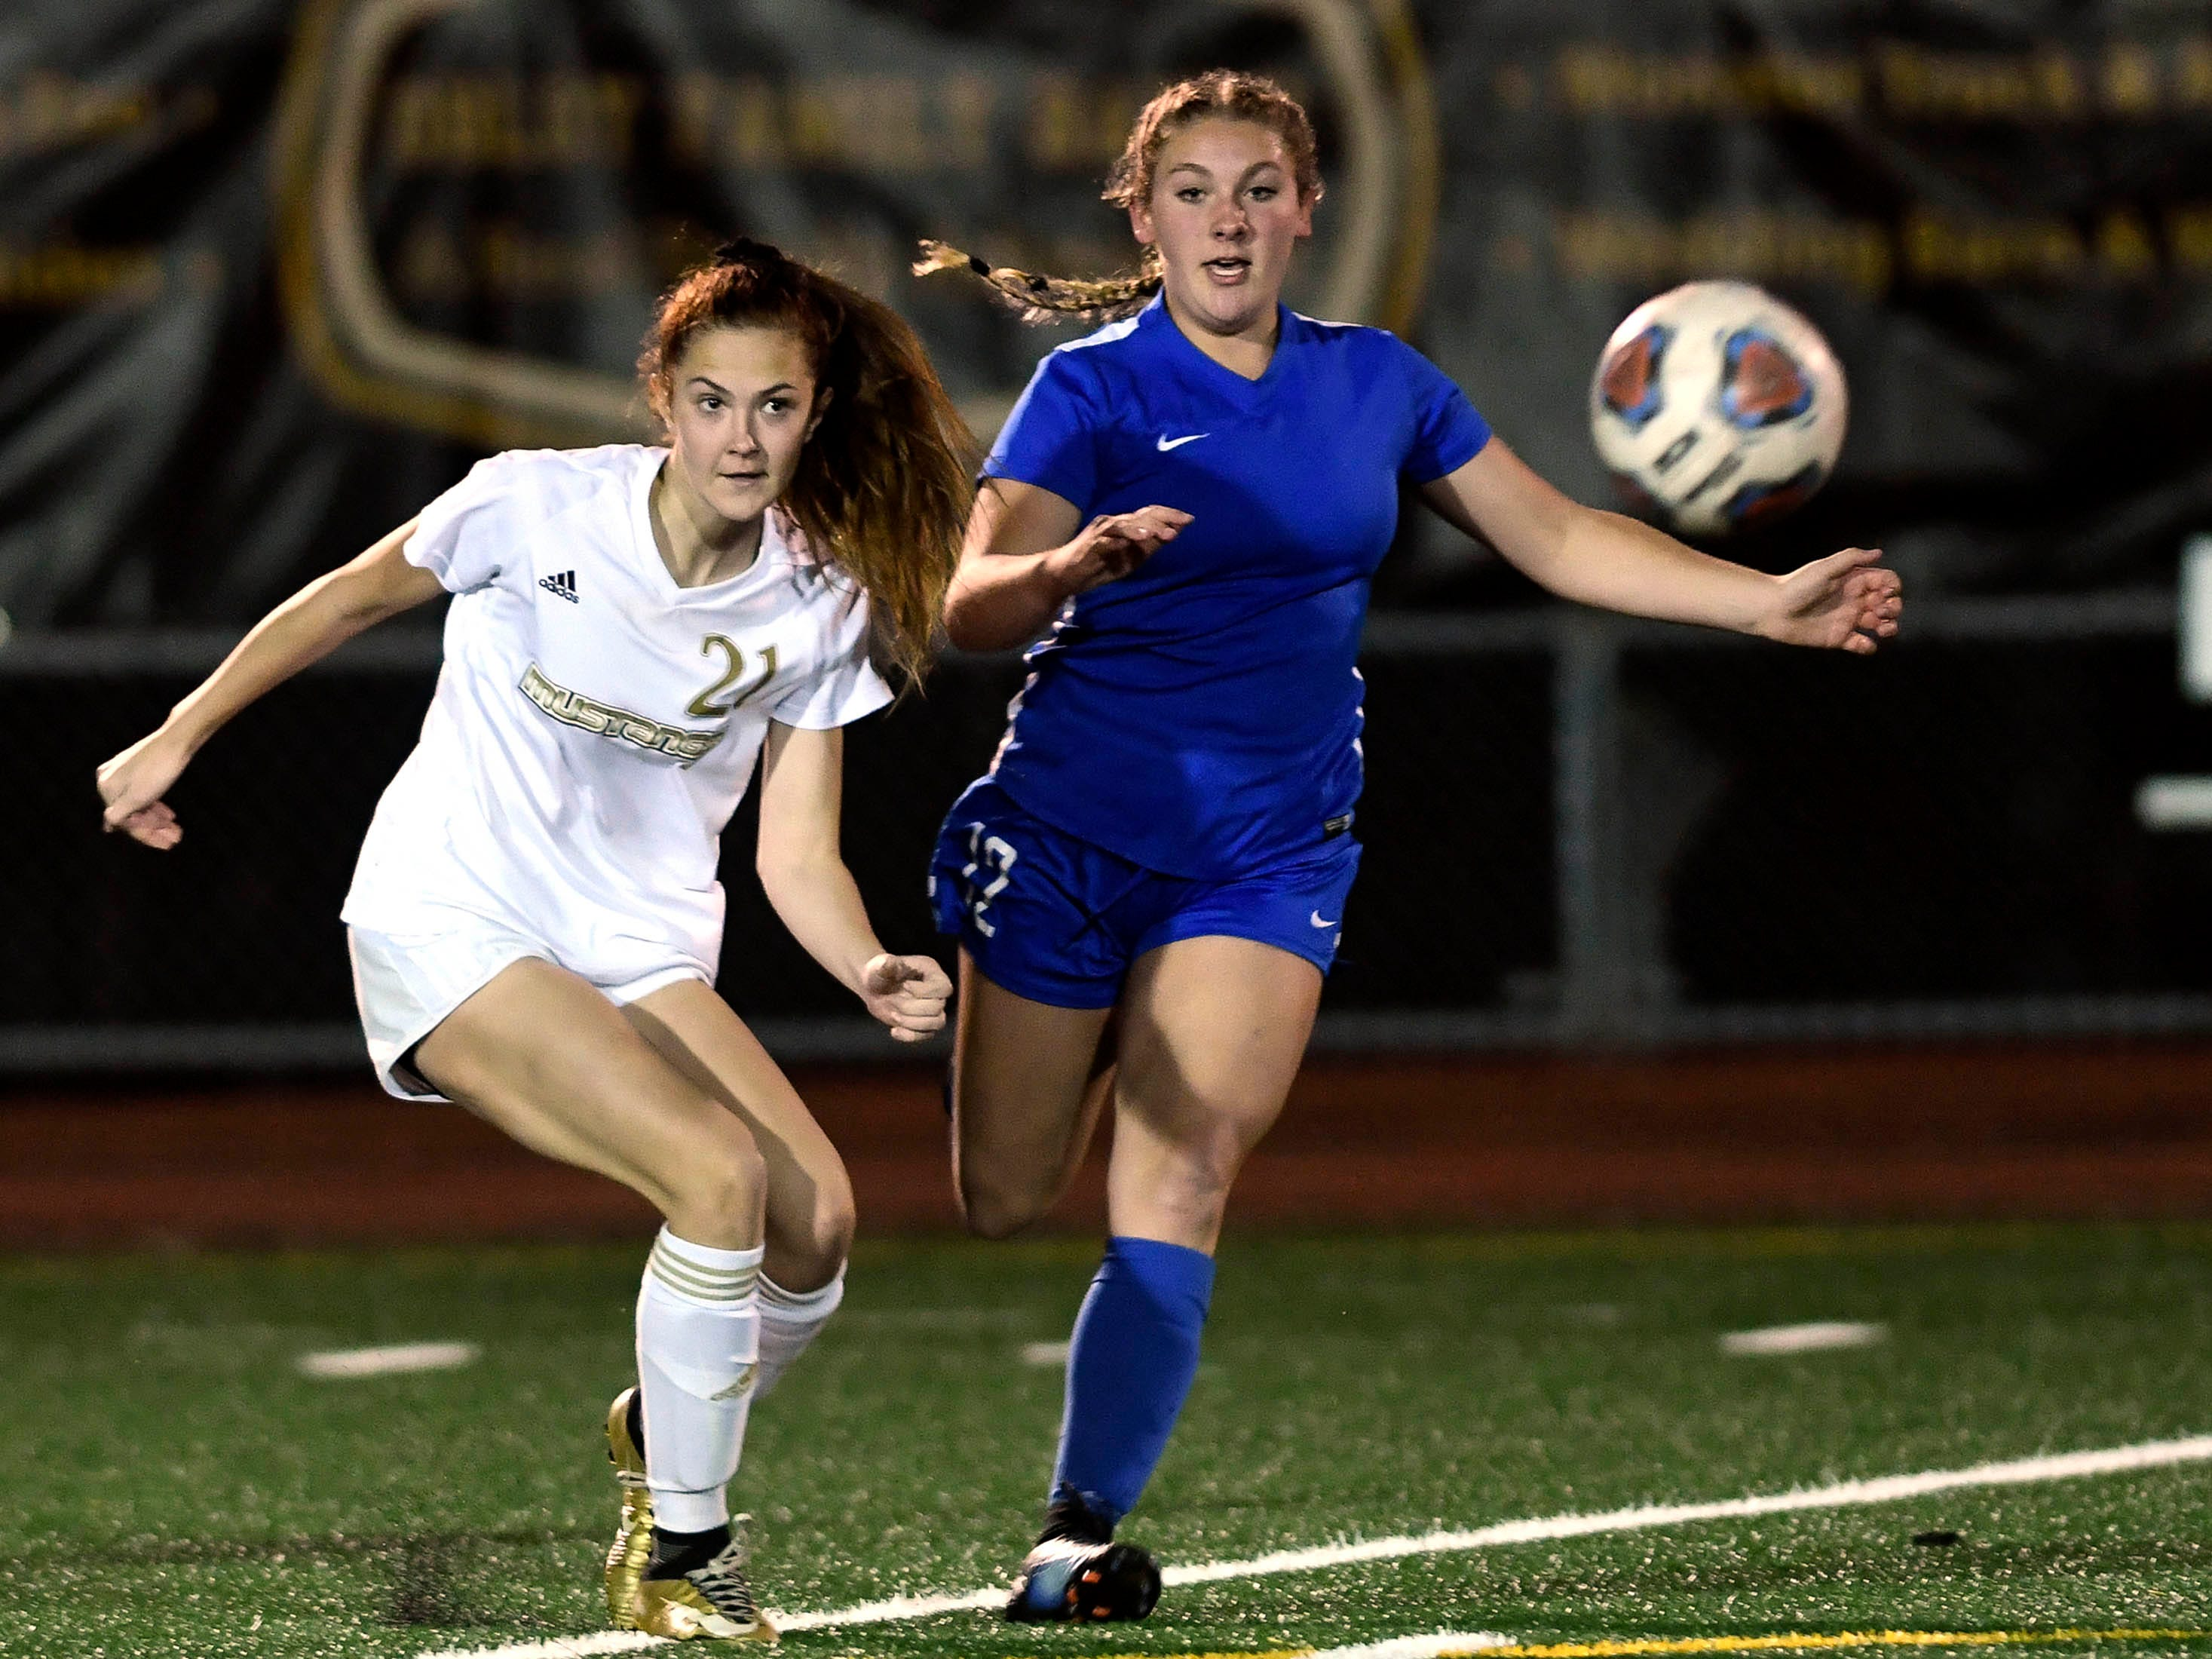 Ashleigh Sweat of Merritt Island drives the ball away from Macey Neal of Titusville during Tuesday's District 12, Class 3A semifinal game.